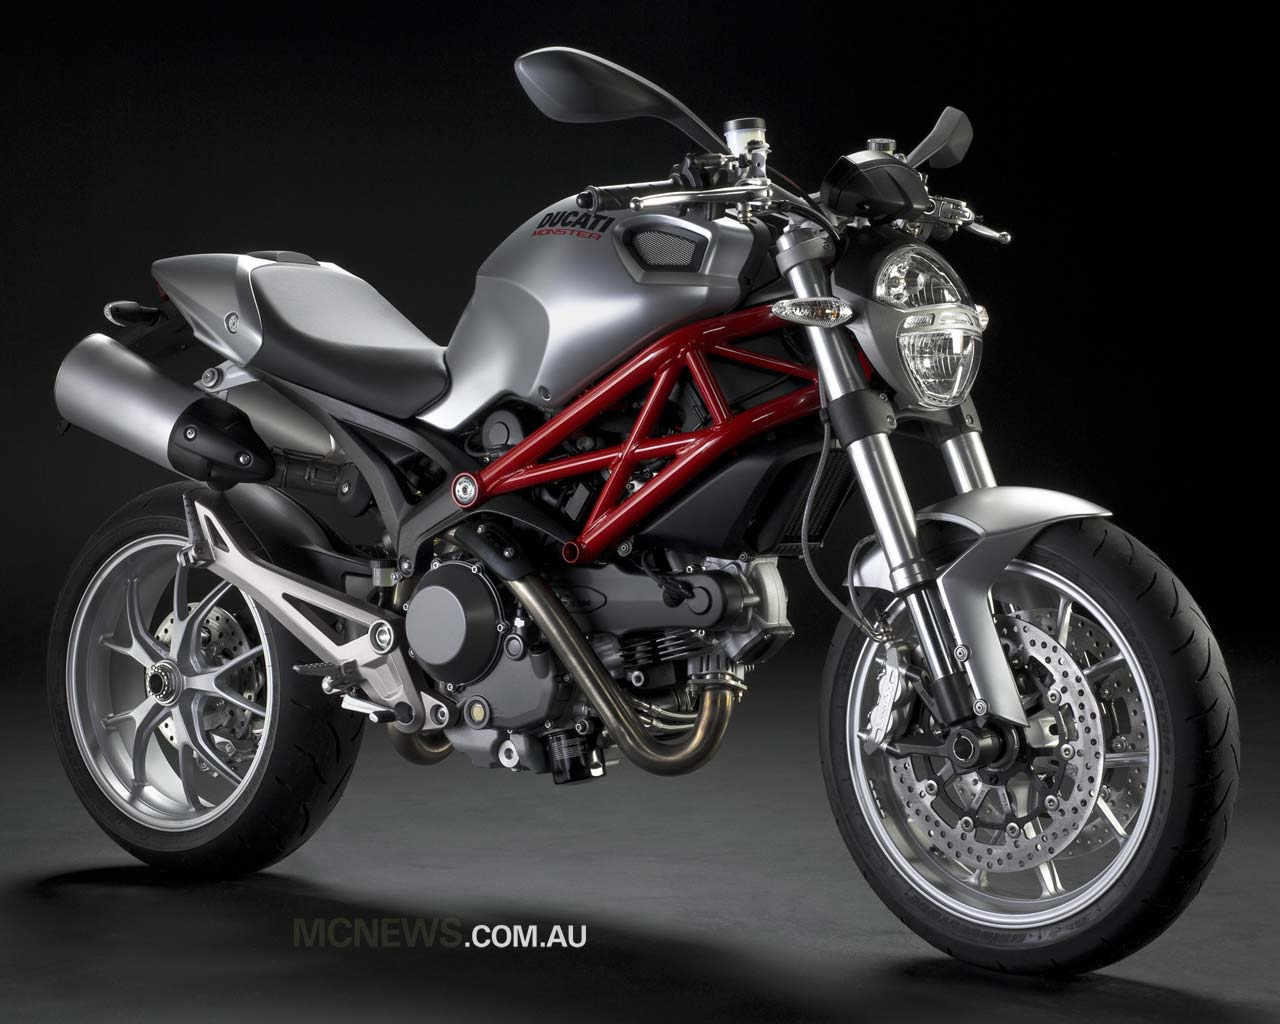 Ducati Monster 1100 S 2010 images #79344